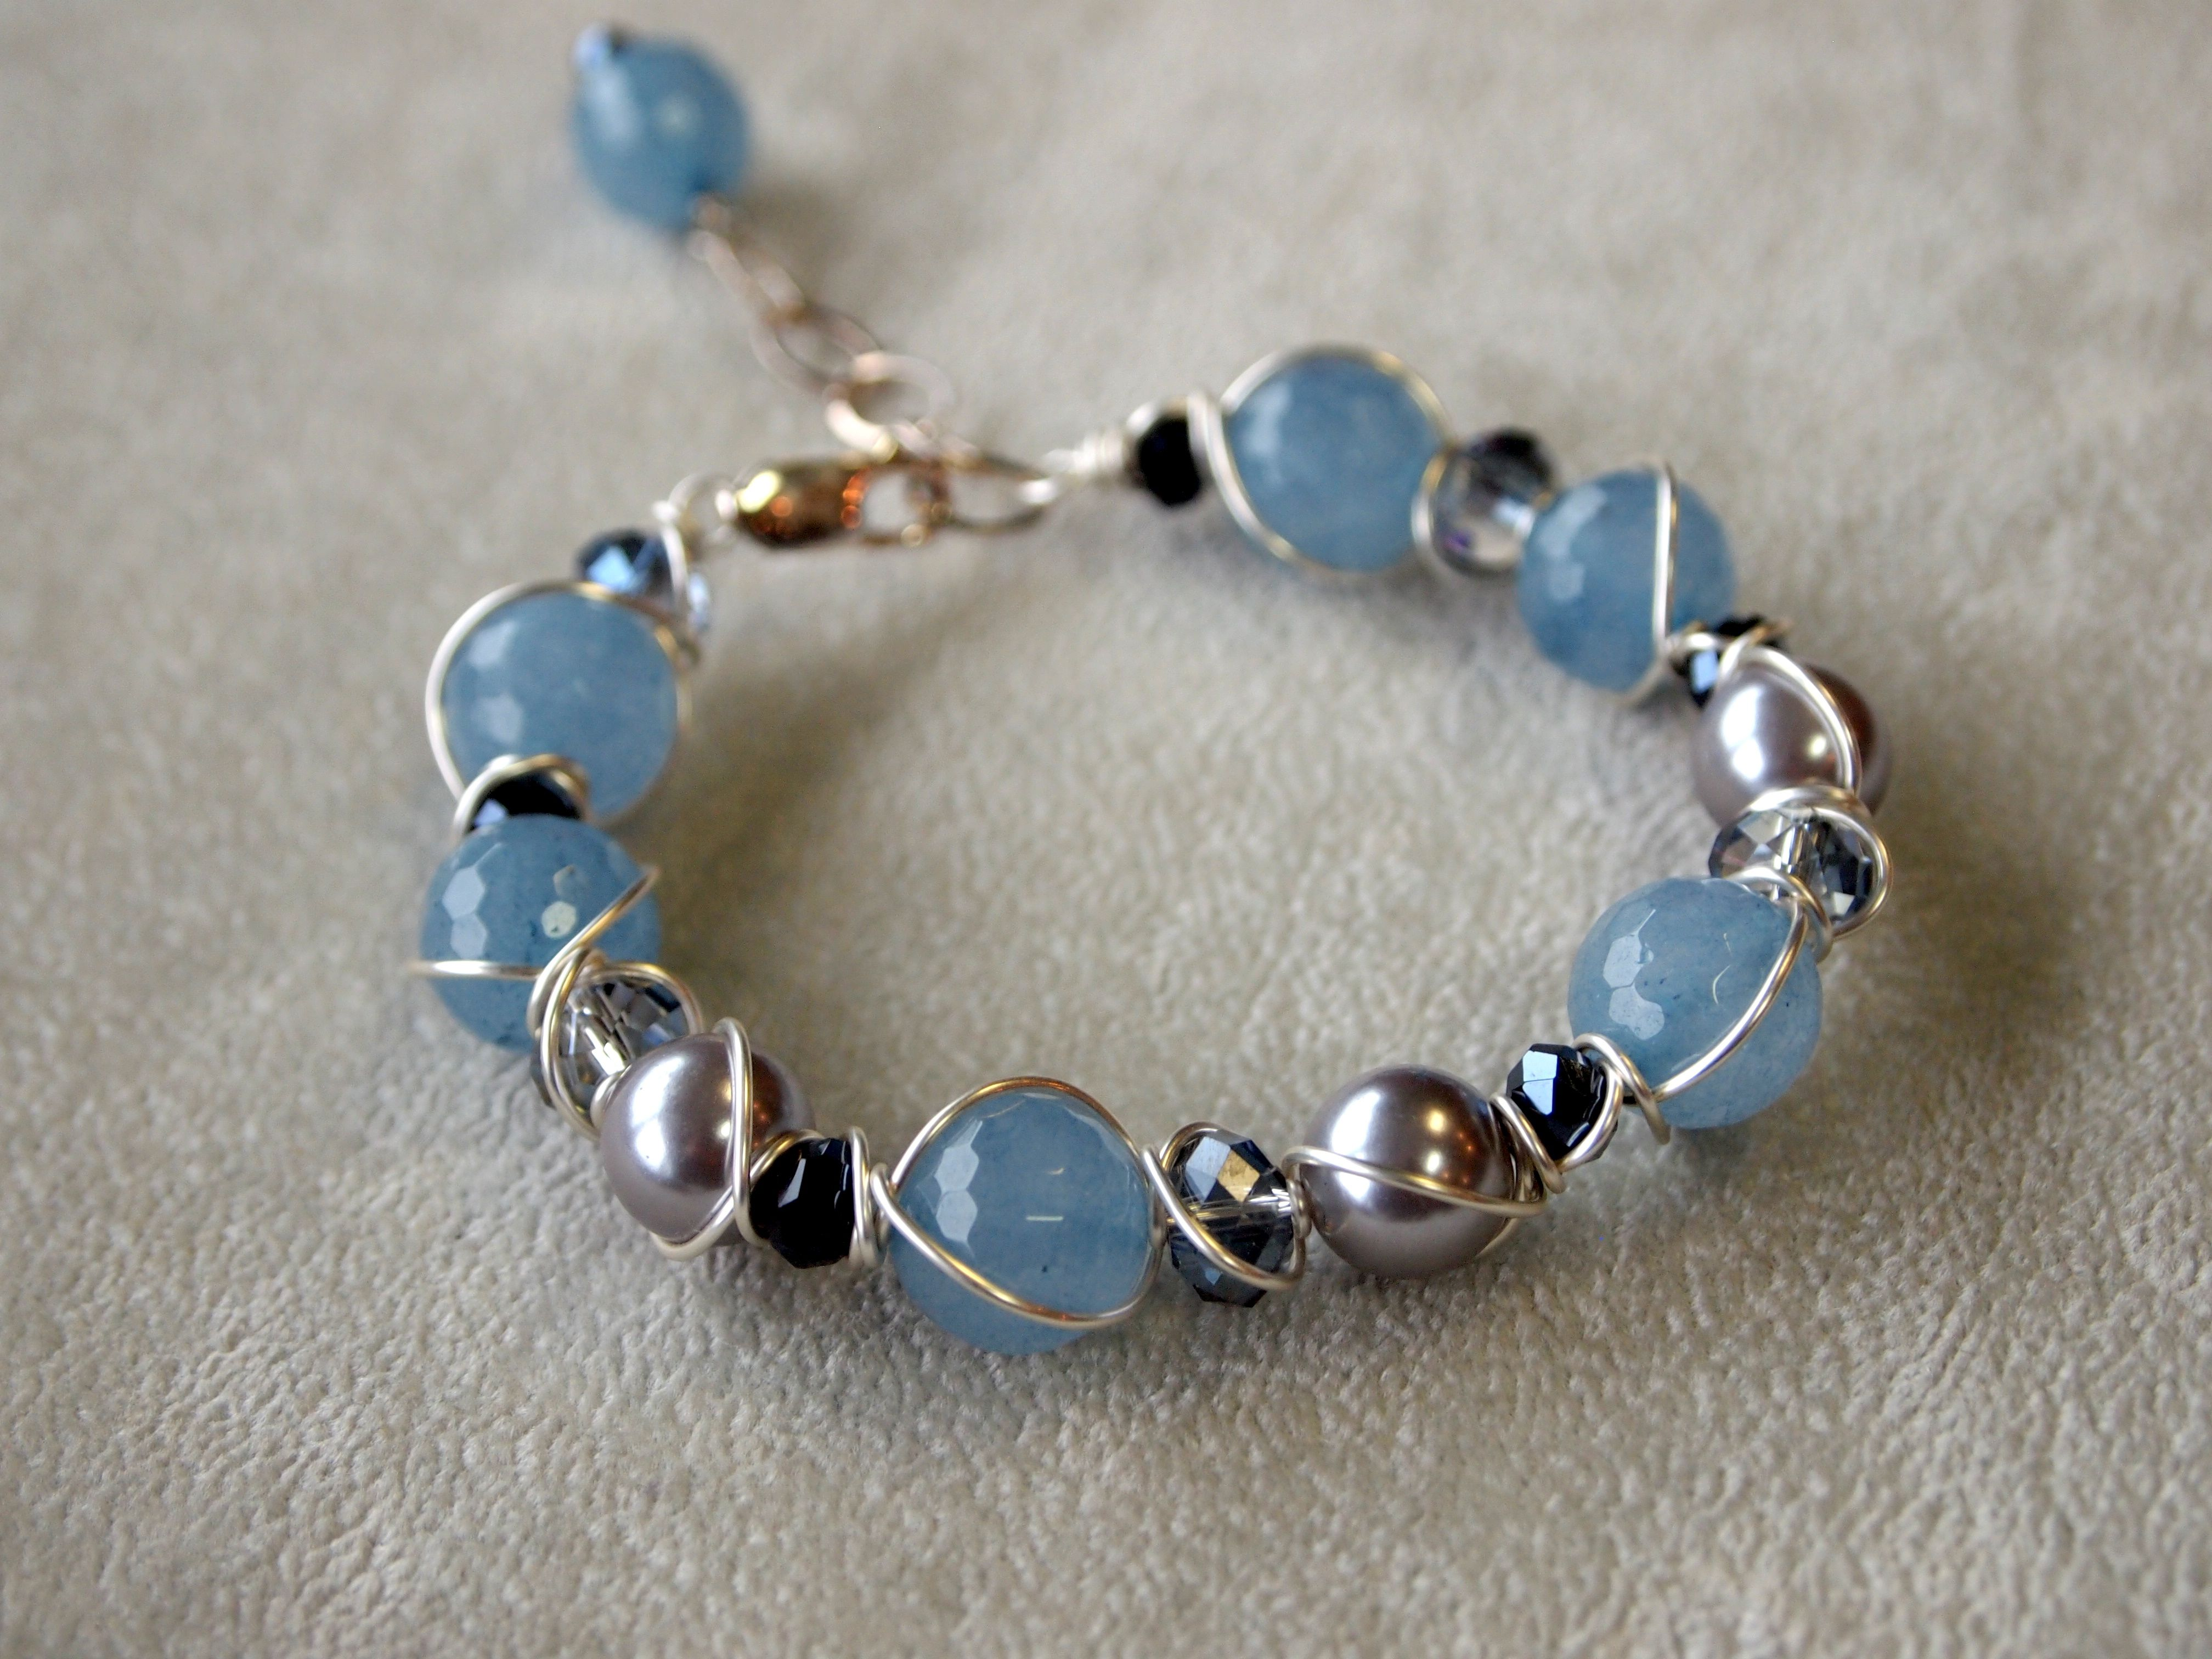 wire wrapped bracelets | Wire Wrapped Bracelet | Wire Wrapped ...